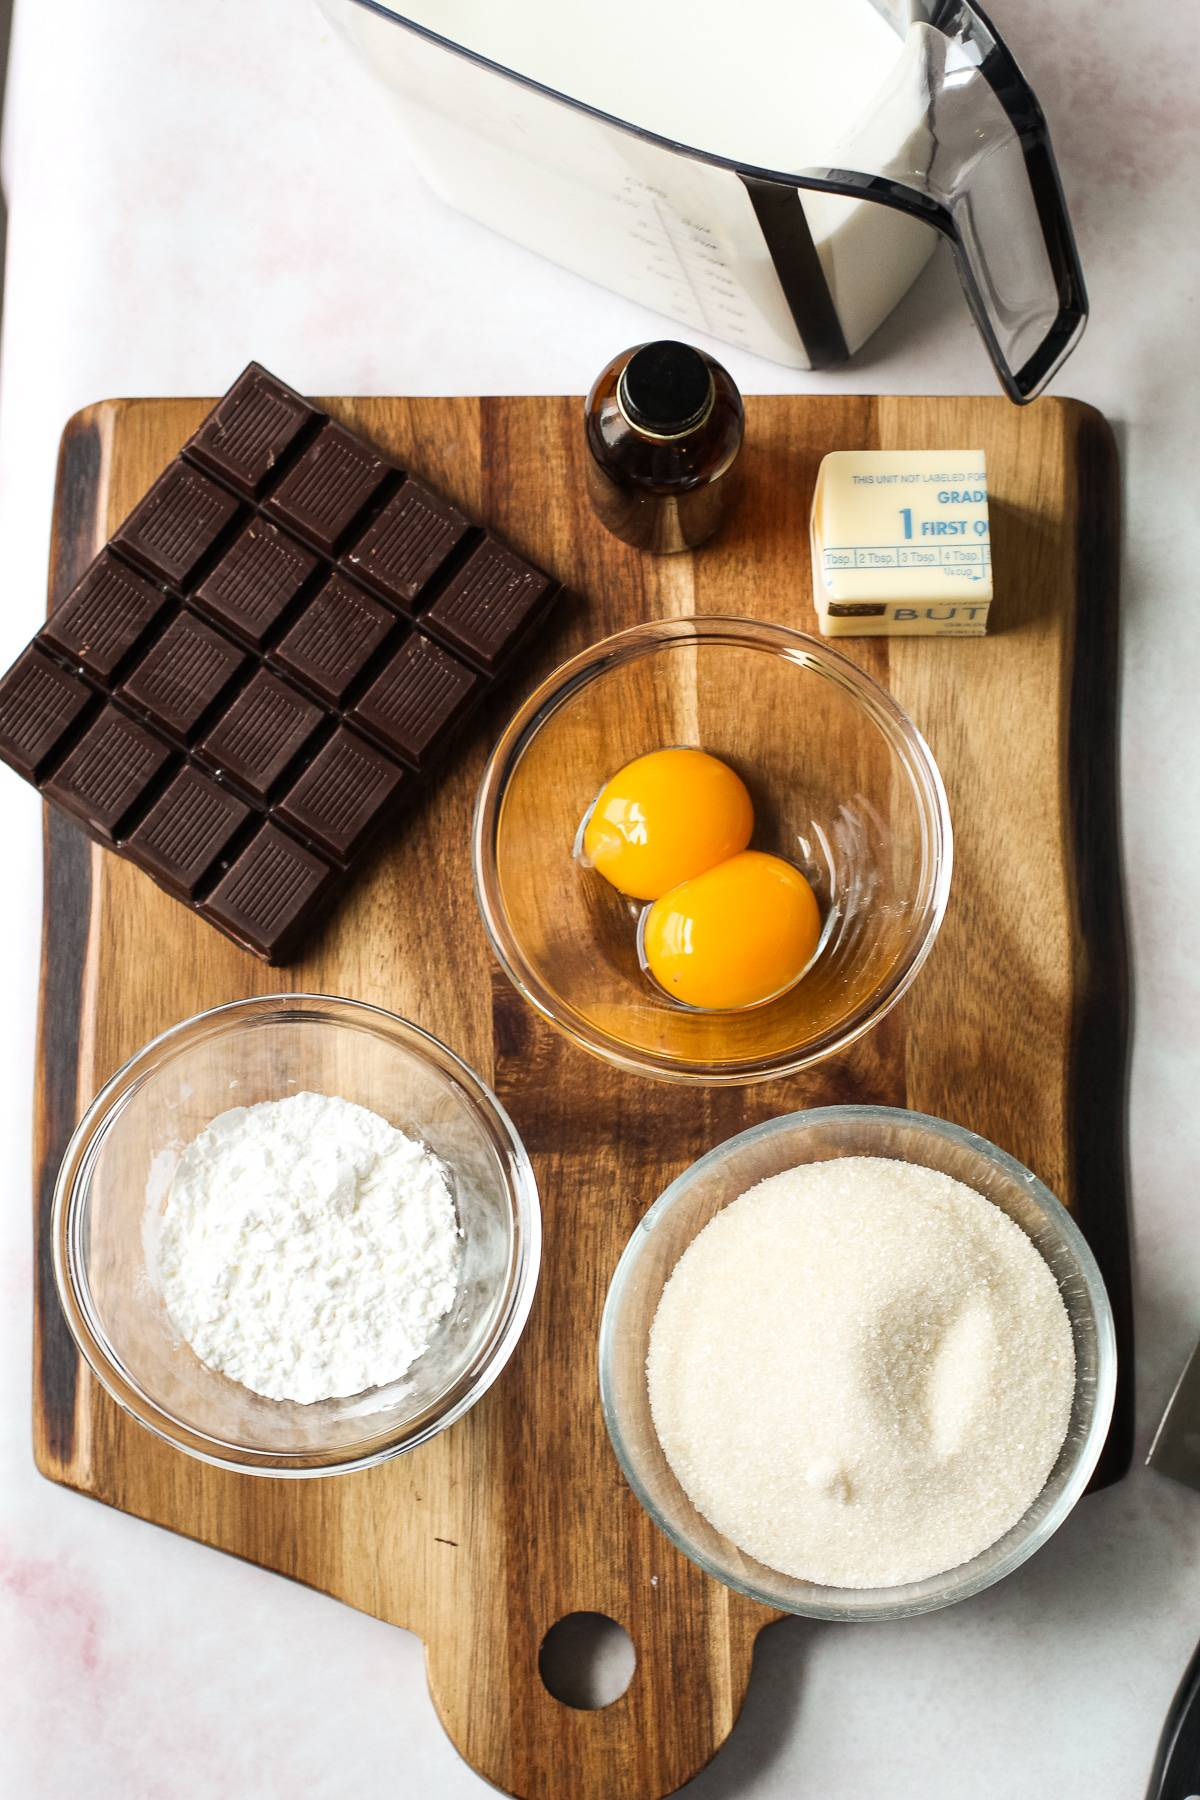 Ingredients for classic chocolate cream pie.